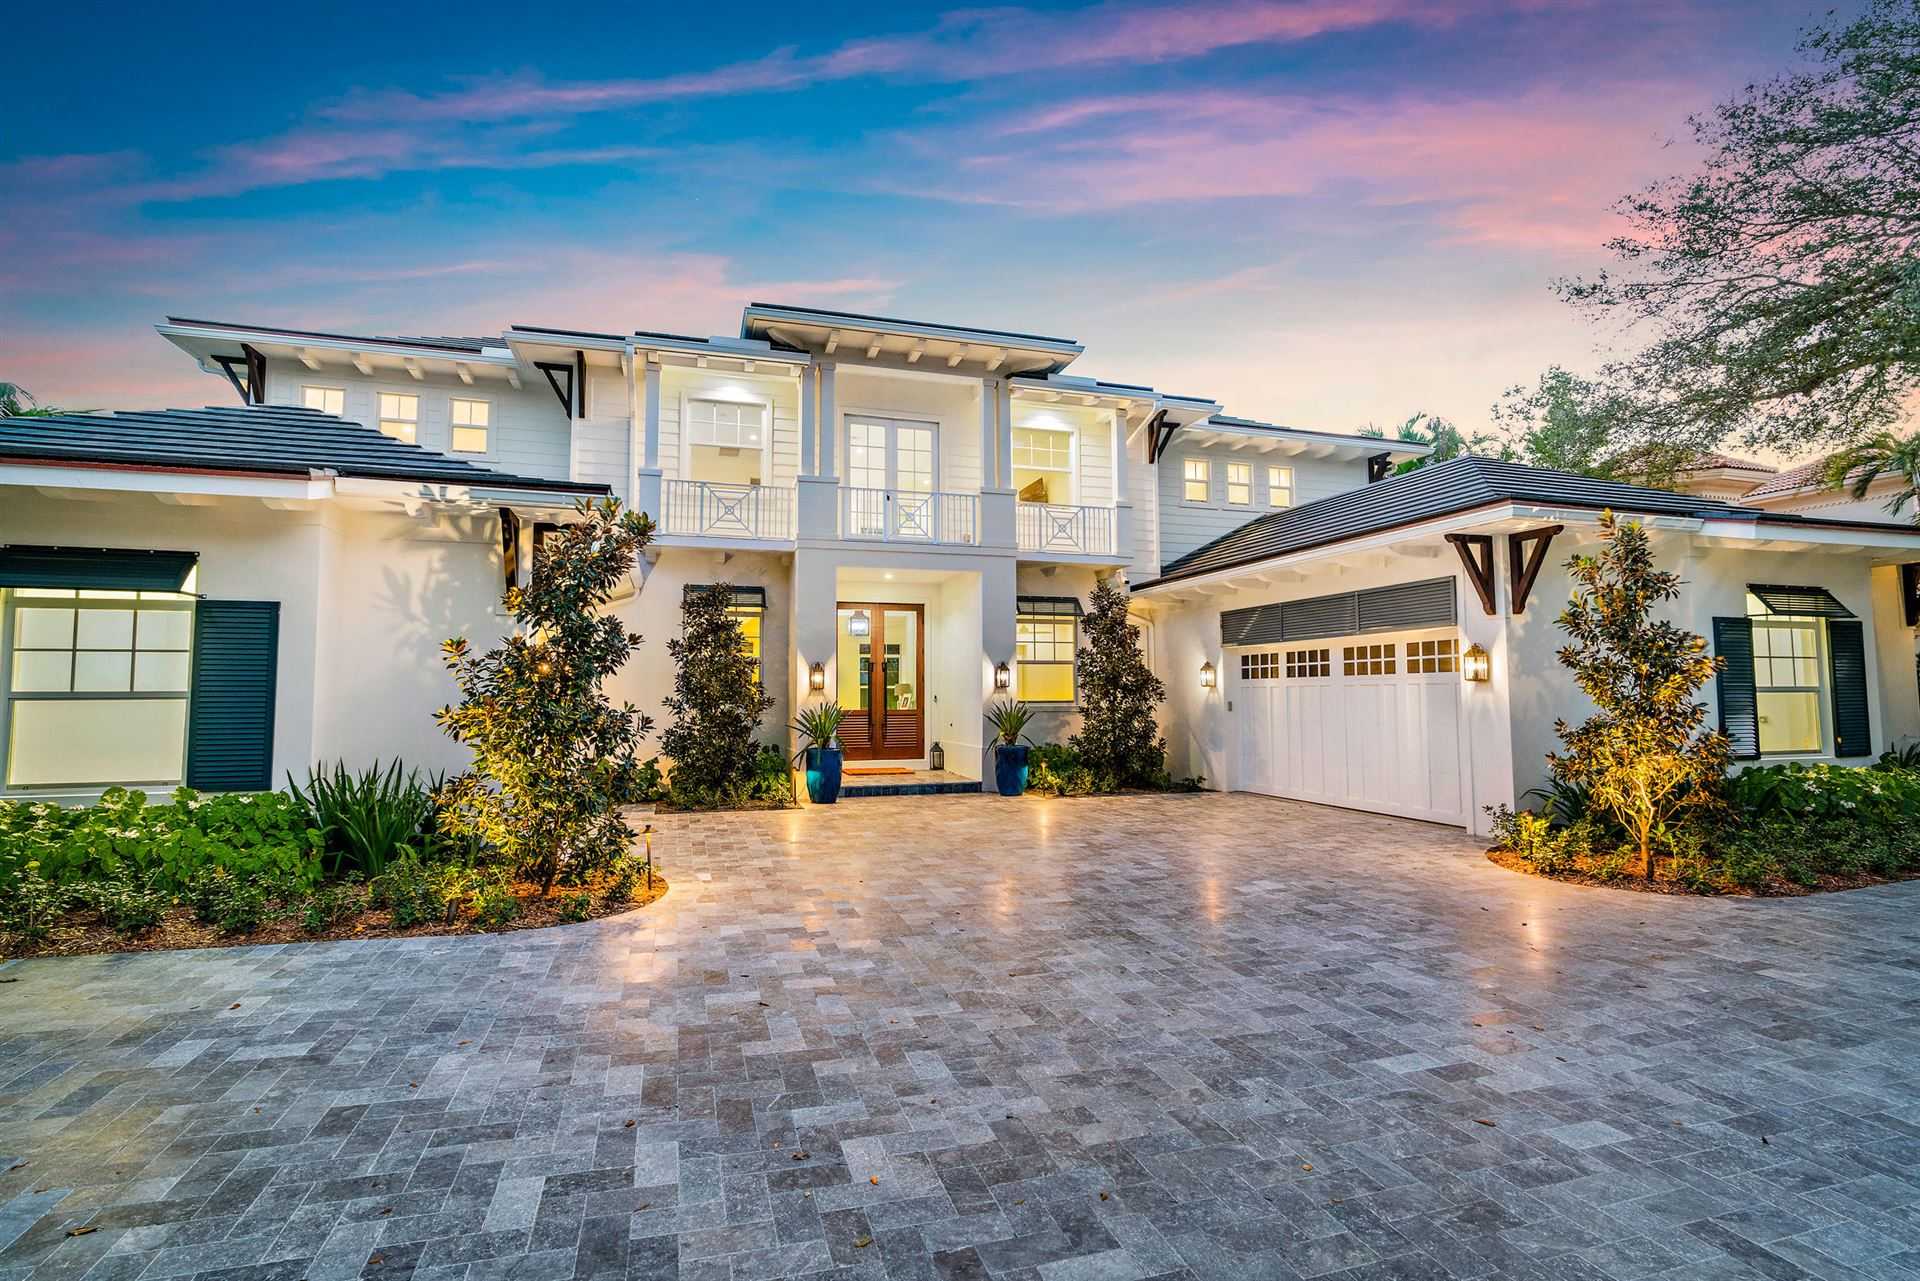 Photo of 159 Commodore Drive, Jupiter, FL 33477 (MLS # RX-10672899)